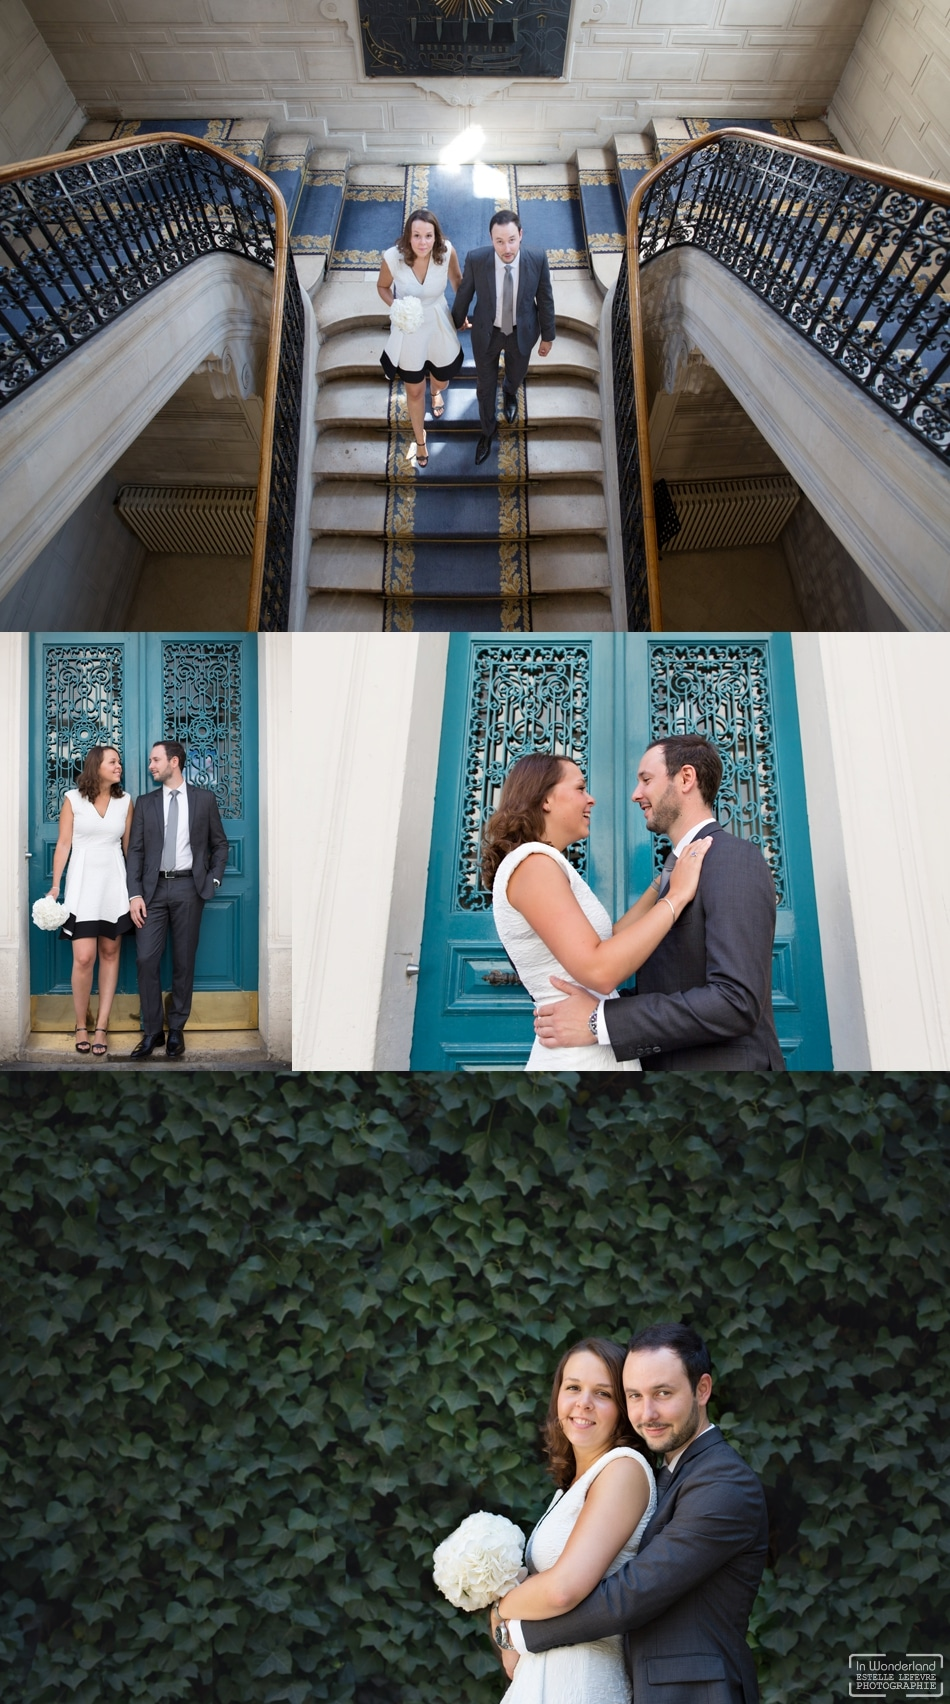 Mariage civil photos de couple dans le Mariais à Paris